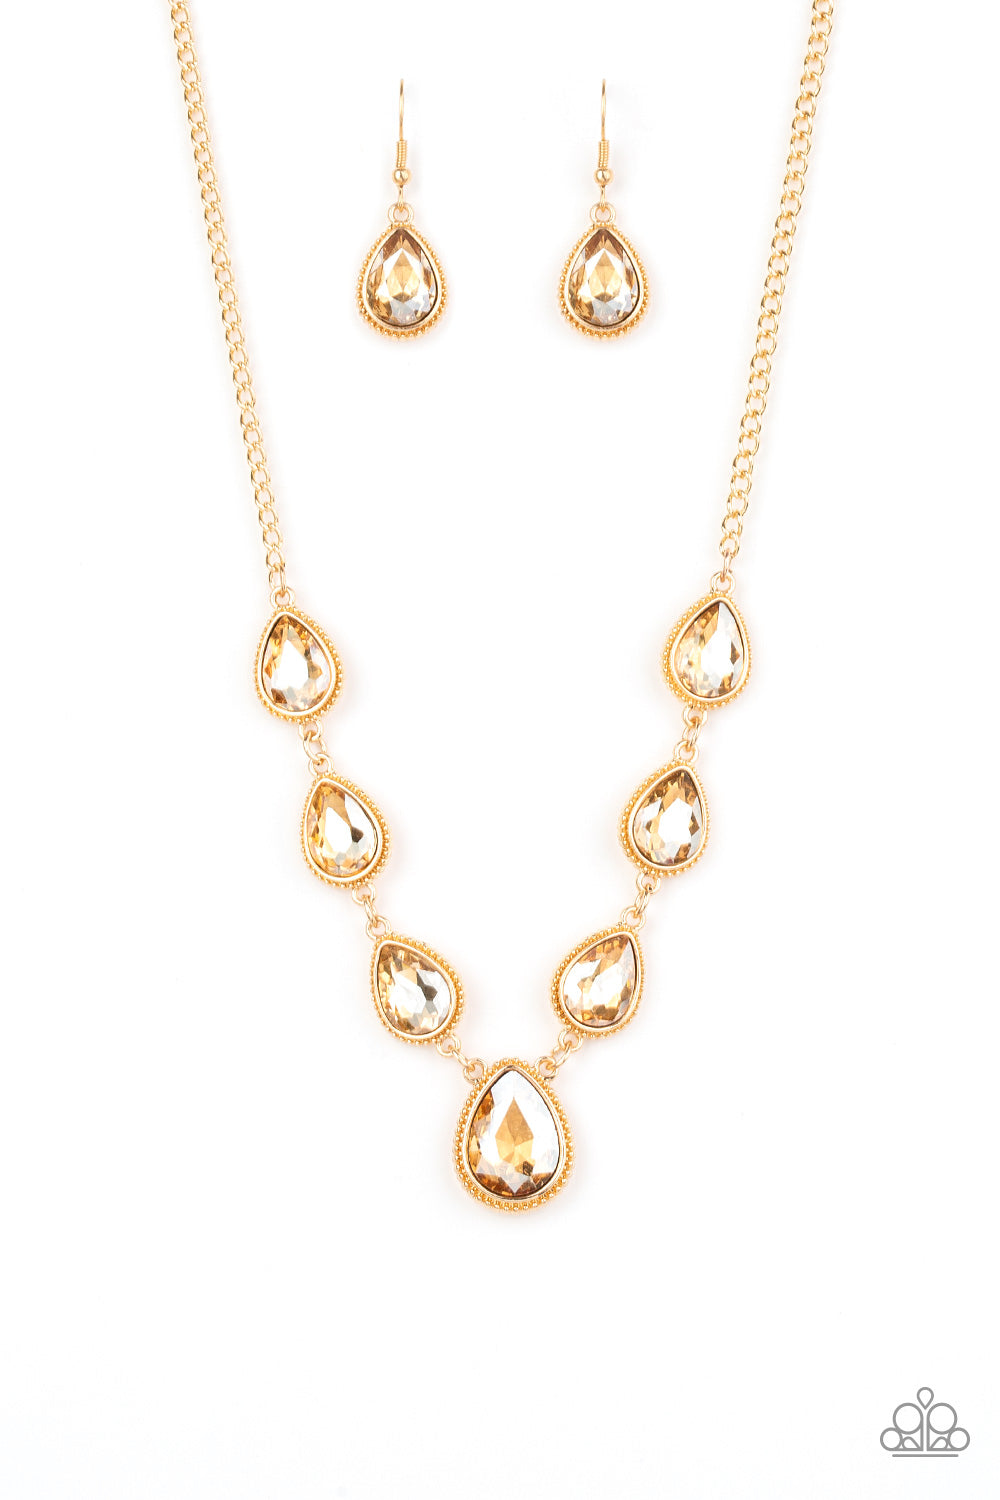 Paparazzi Socialite Social - Gold Necklace